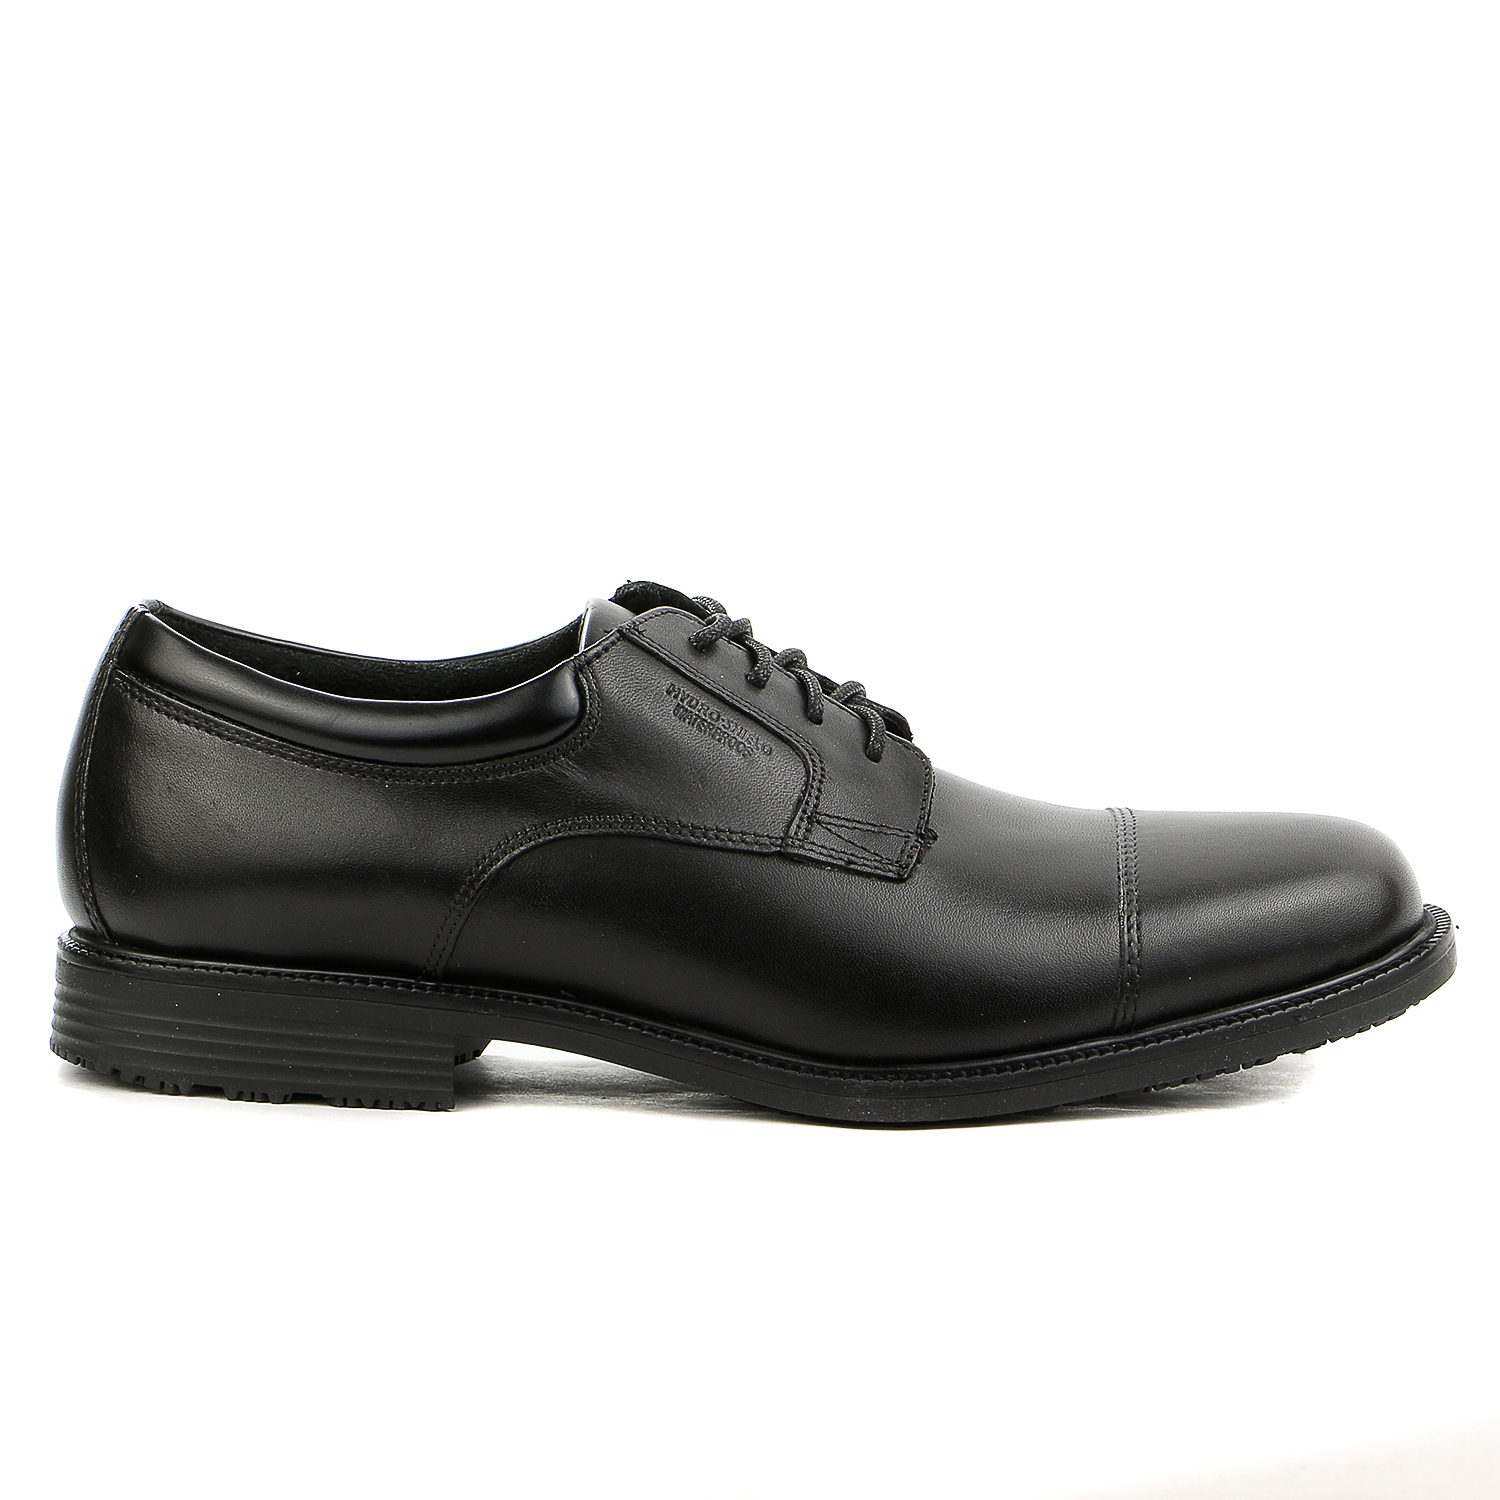 Rockport Essential Details WP Cap Toe Oxford Shoe Mens by Rockport